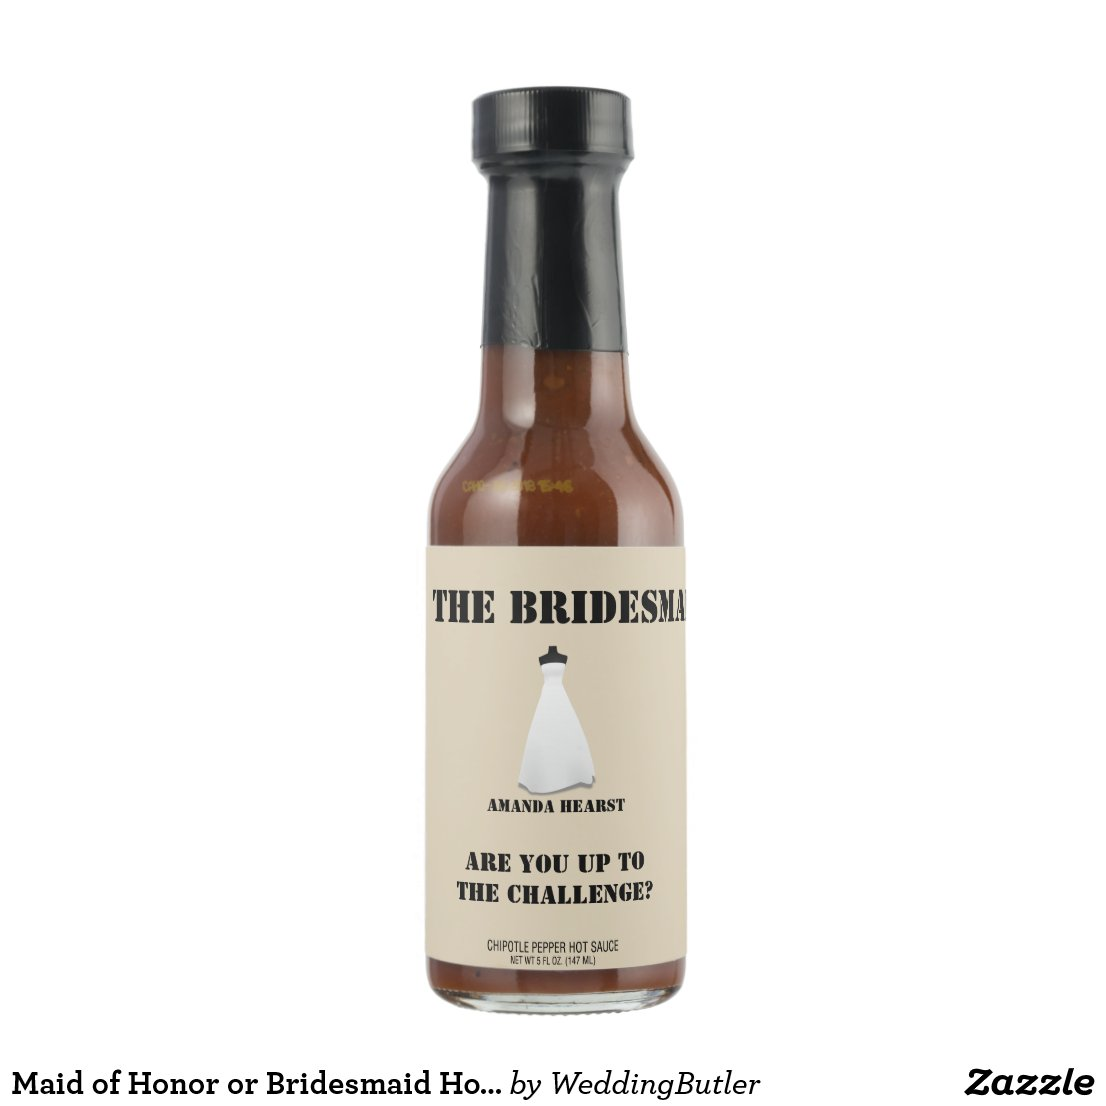 Maid of Honor or Bridesmaid Hot Sauce Invite